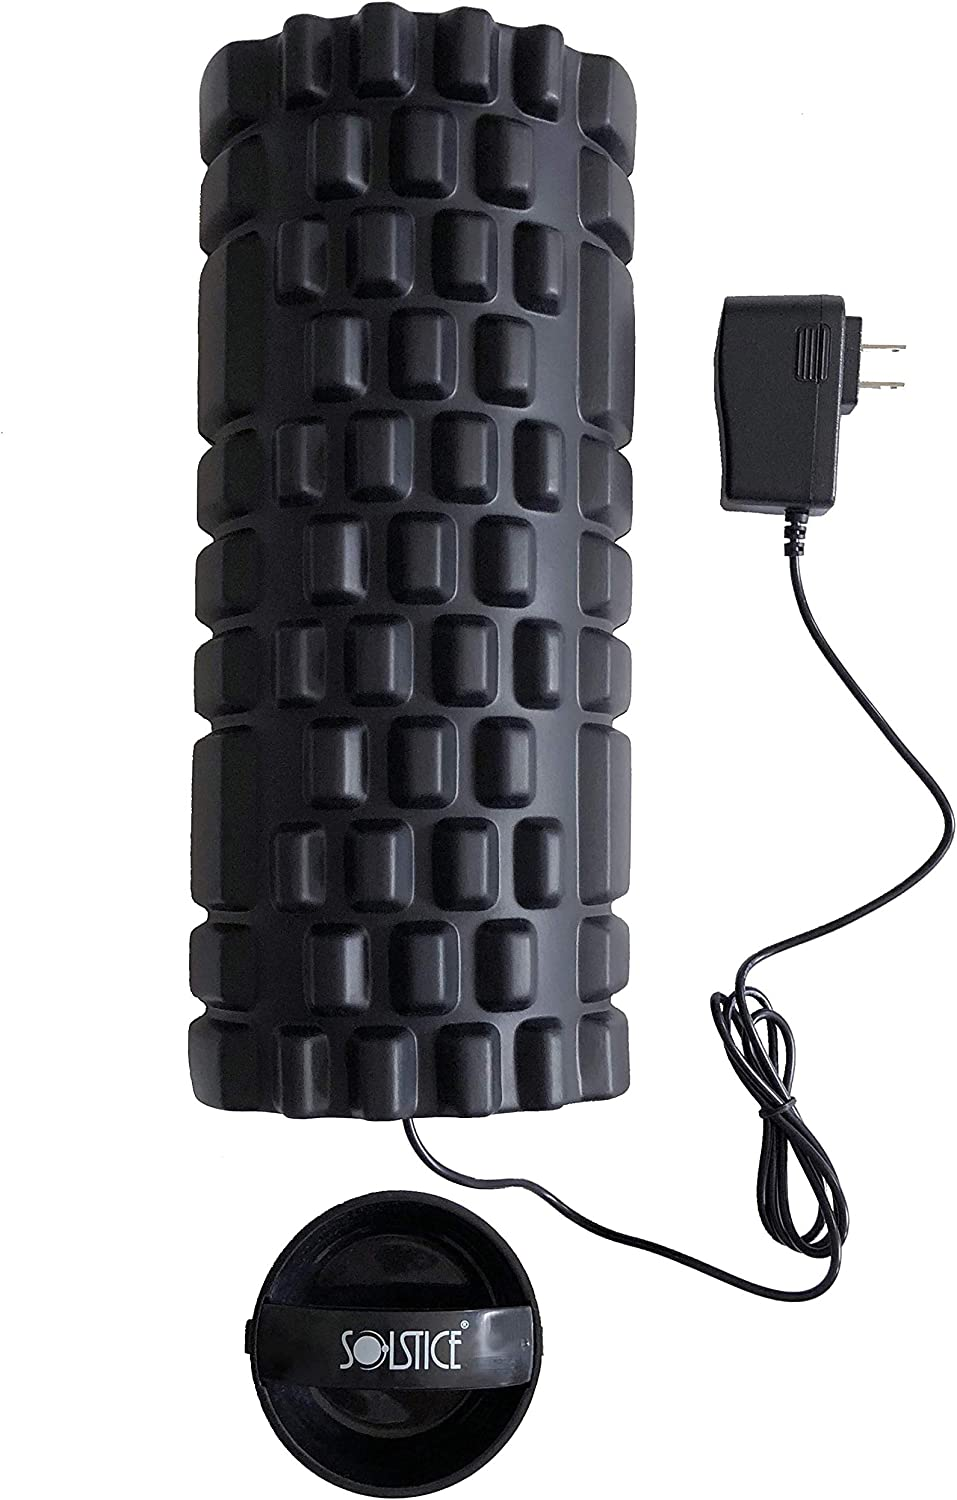 Solstice Co. Vibrating Foam Roller for Muscle Recovery, Physical Therapy Exercise – 3 Speed Rechargeable High Density – Perfect for Deep Tissue and Myofacial Release